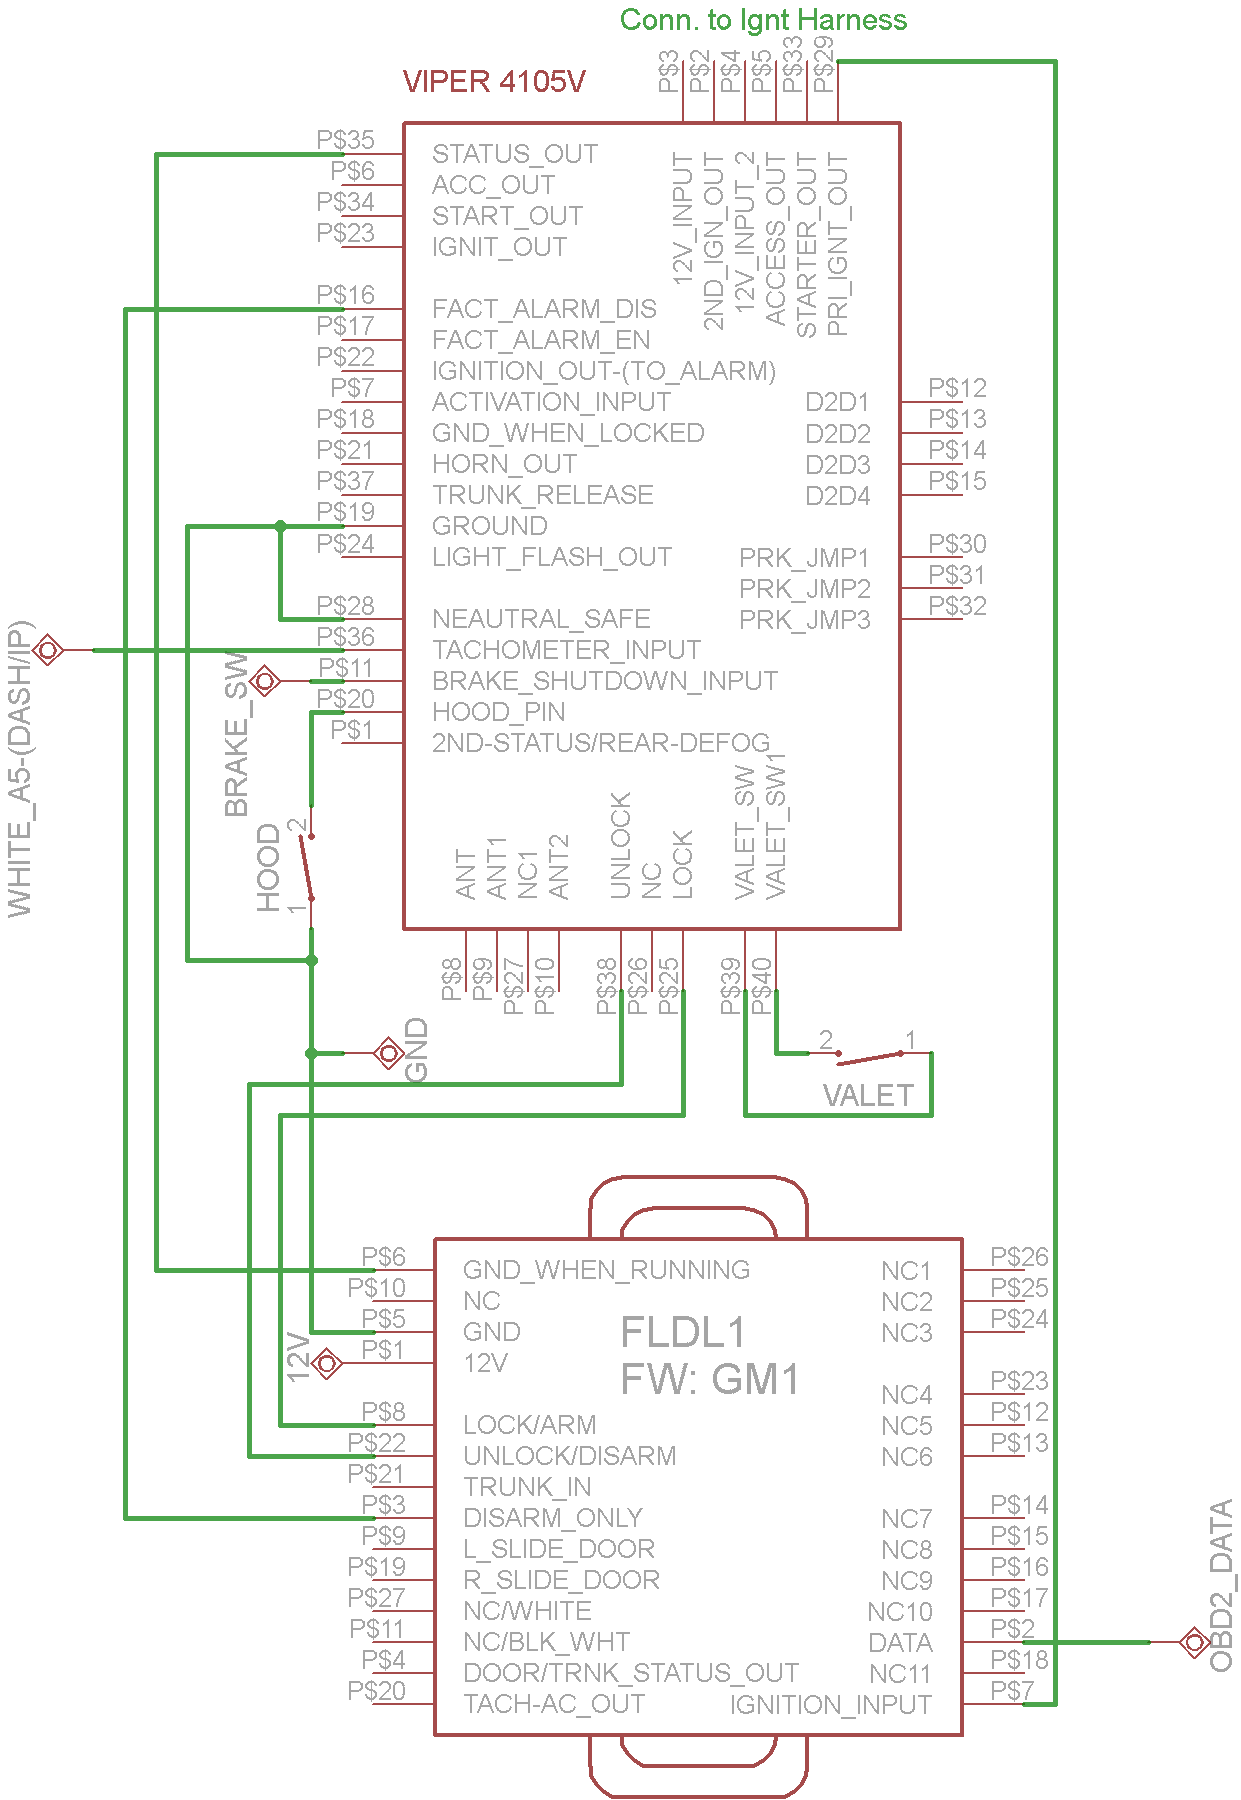 Viper 4105v Remote Start Wiring Diagram